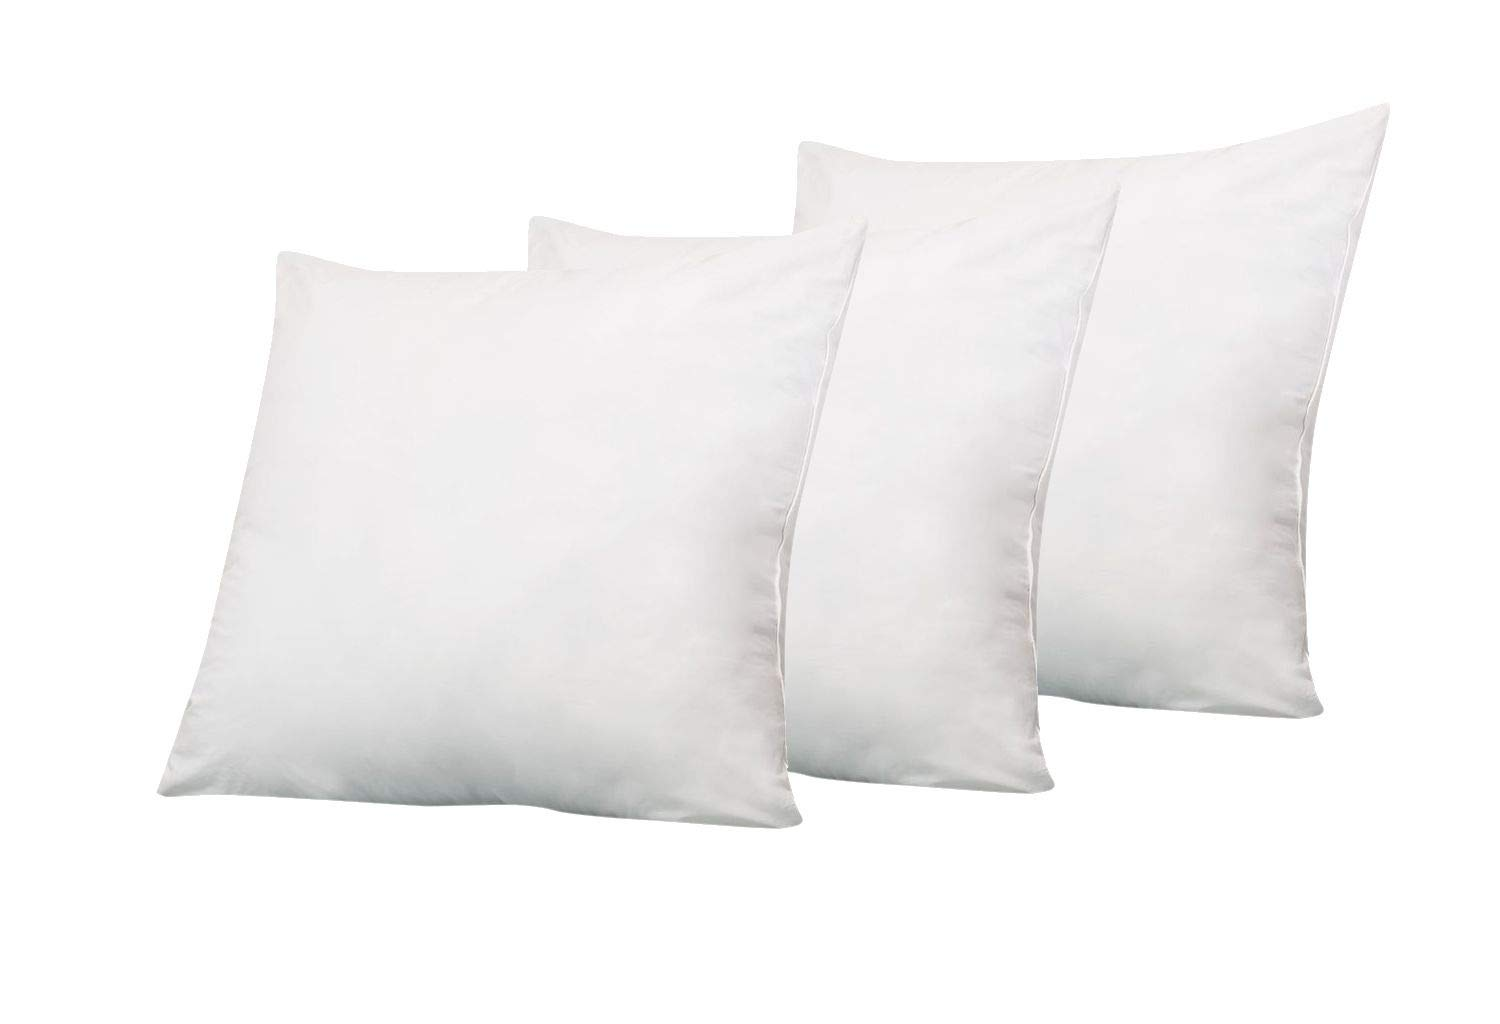 Designer Bedding Store ! Premium Hotel Collection Pillows ! 6D Pillow (28 x 28) Set of 3 Pillow Inserts for Decorative Bed Pillow Inserts Shams - Down Alternative Fill by Designer Bedding Store